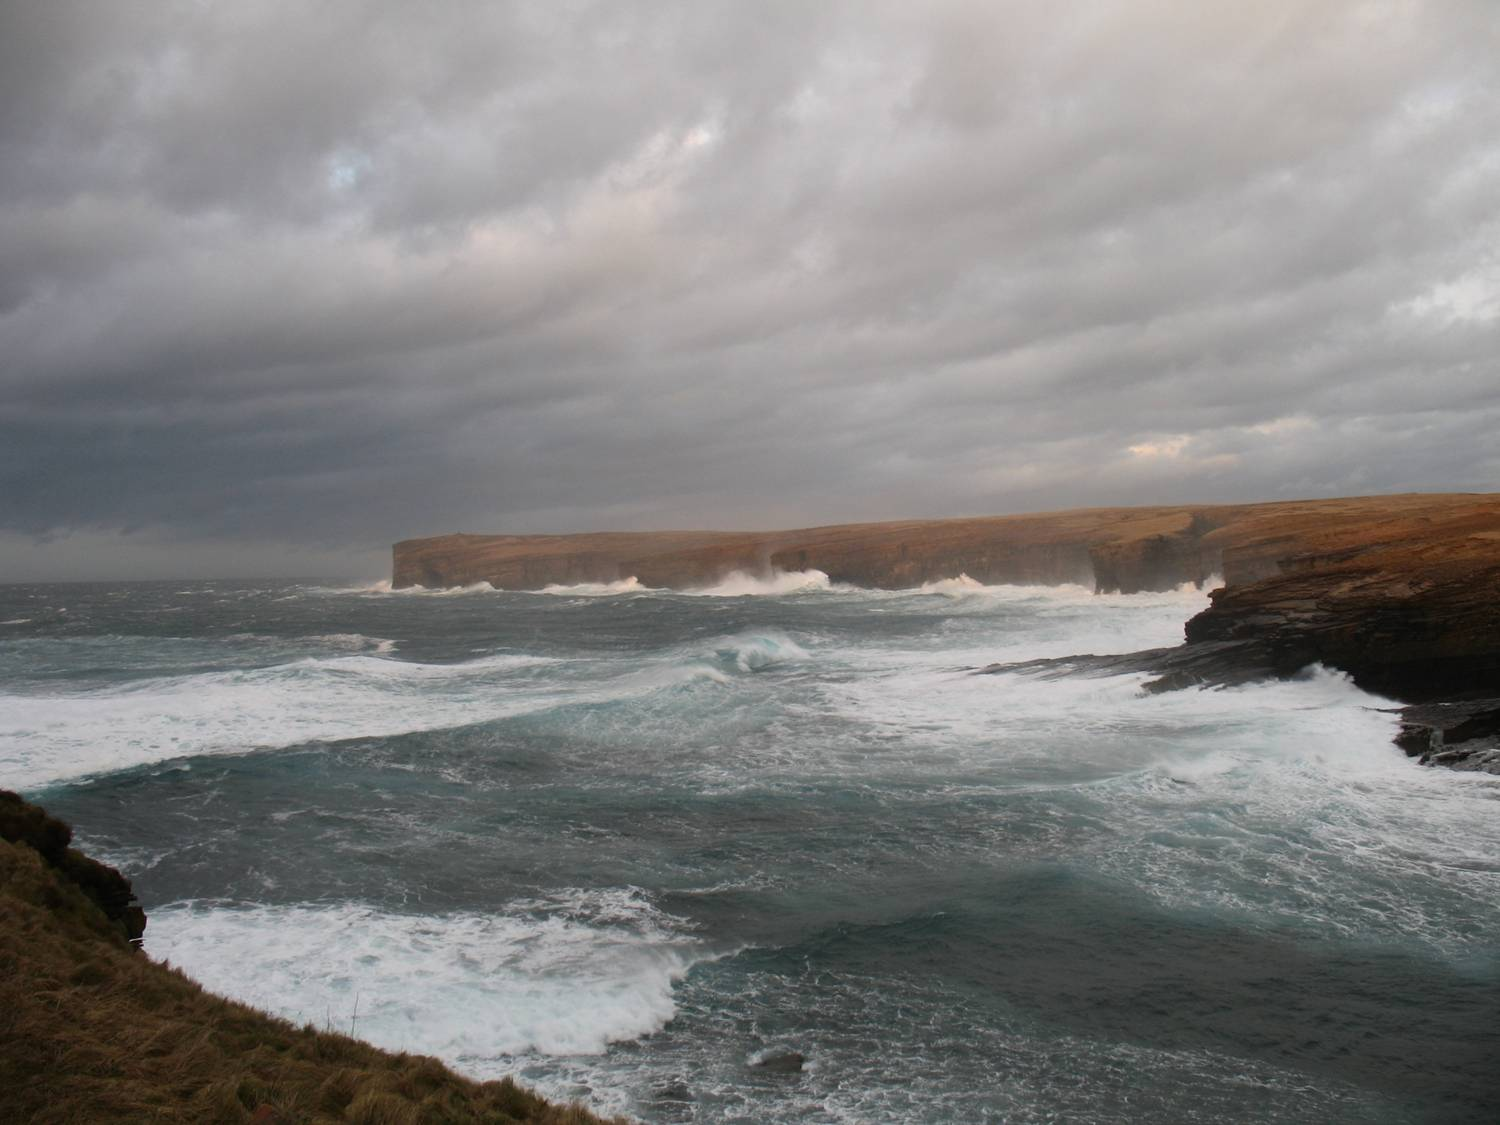 Orkney Islands is one of the most wave powerful sites of Europe